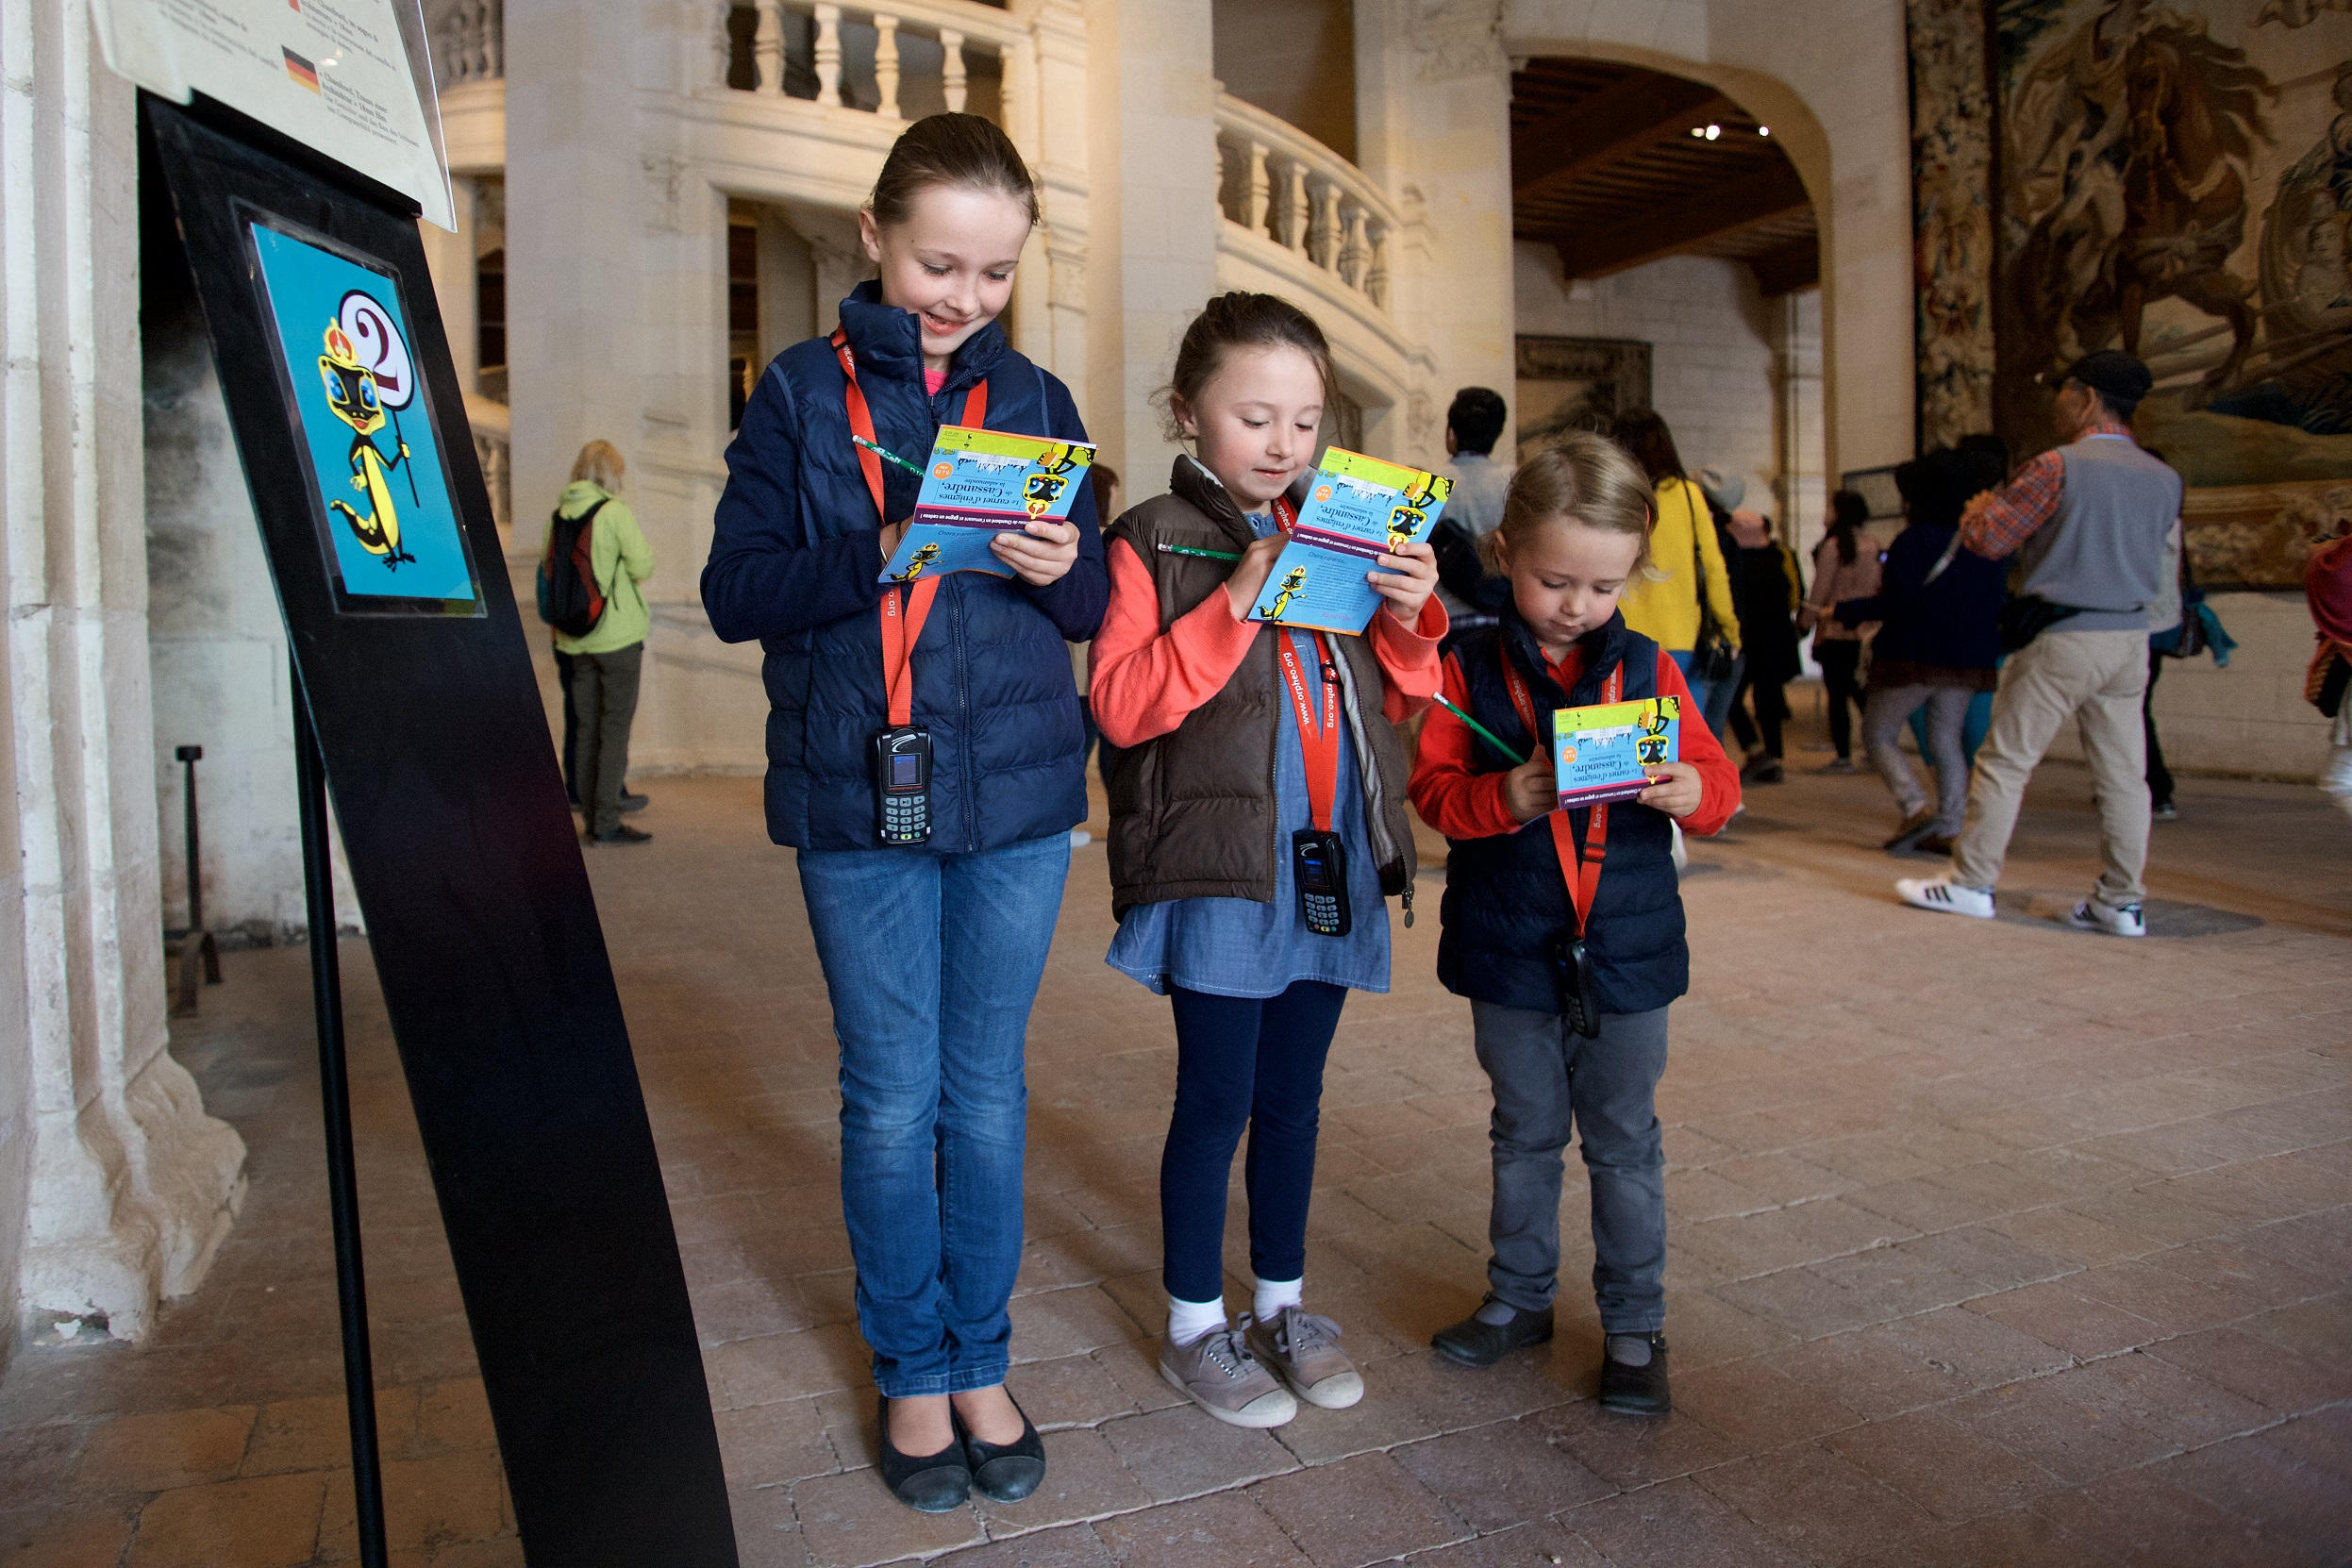 Children exploring Chambord with the histopad. © Ludovic Letot